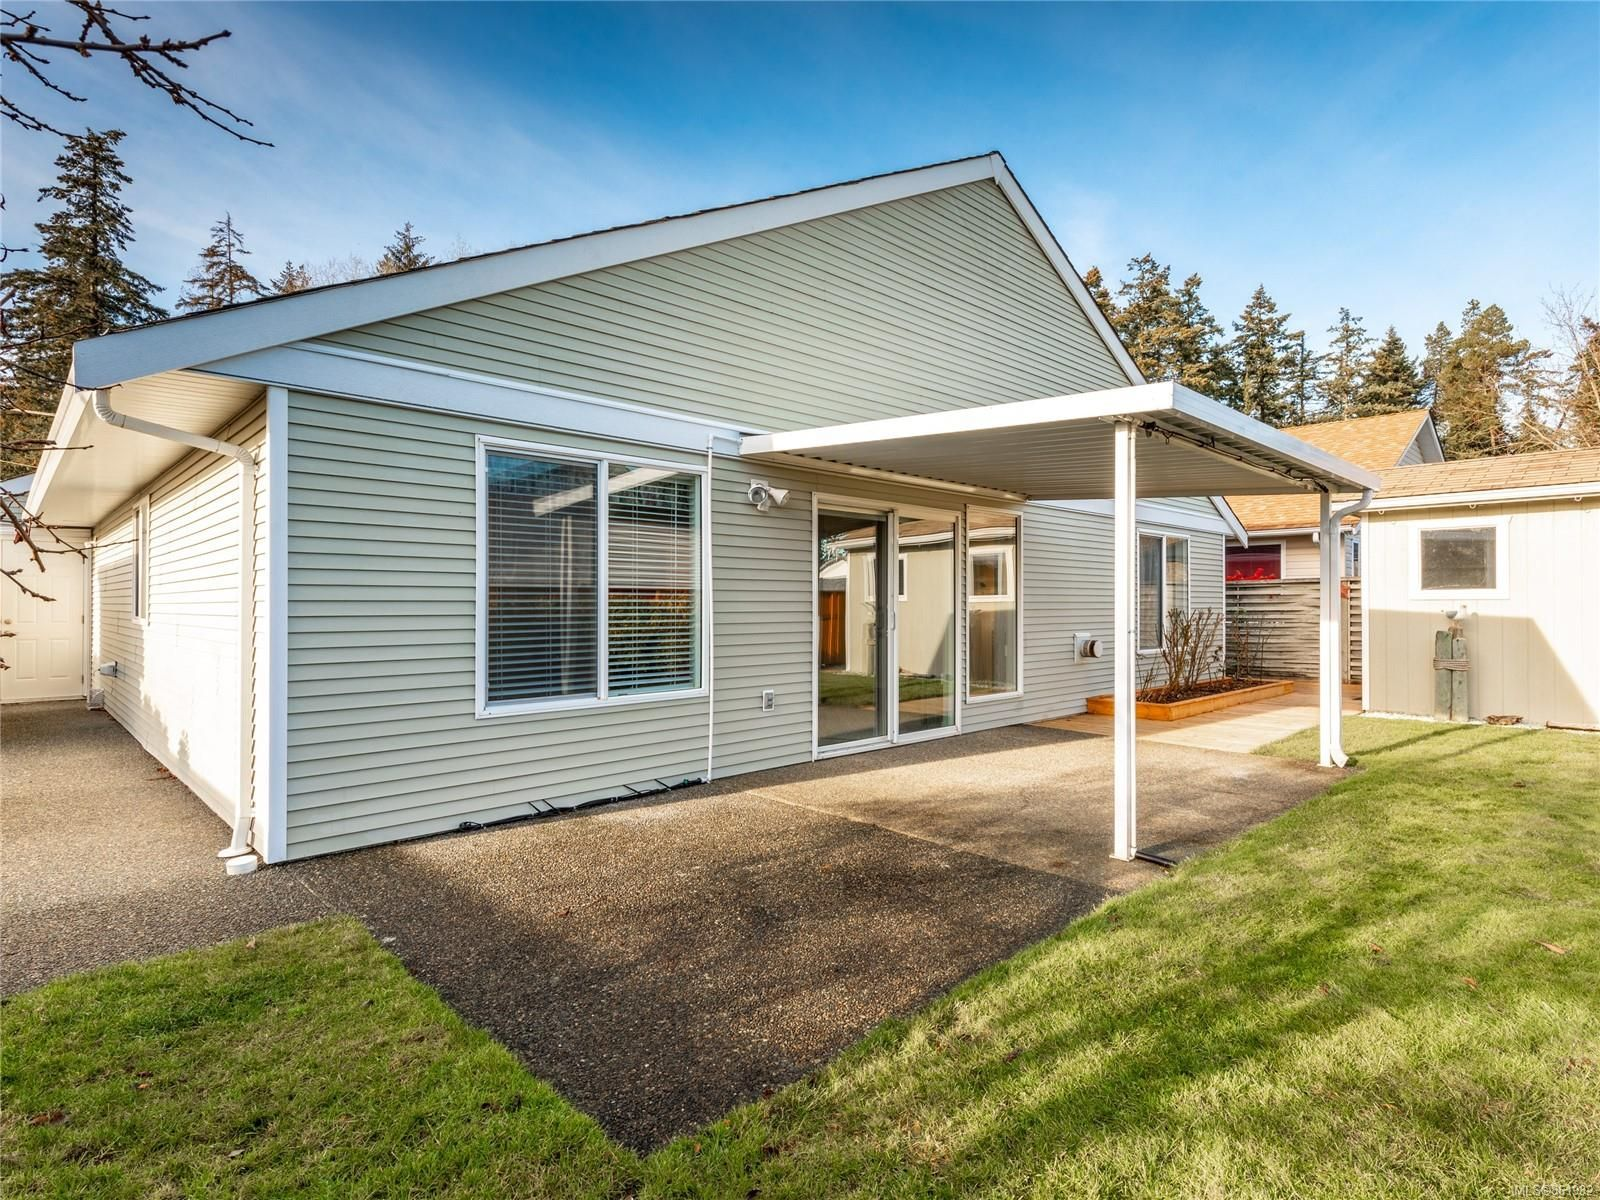 Photo 10: Photos: 300 Church Rd in : PQ Parksville House for sale (Parksville/Qualicum)  : MLS®# 861932